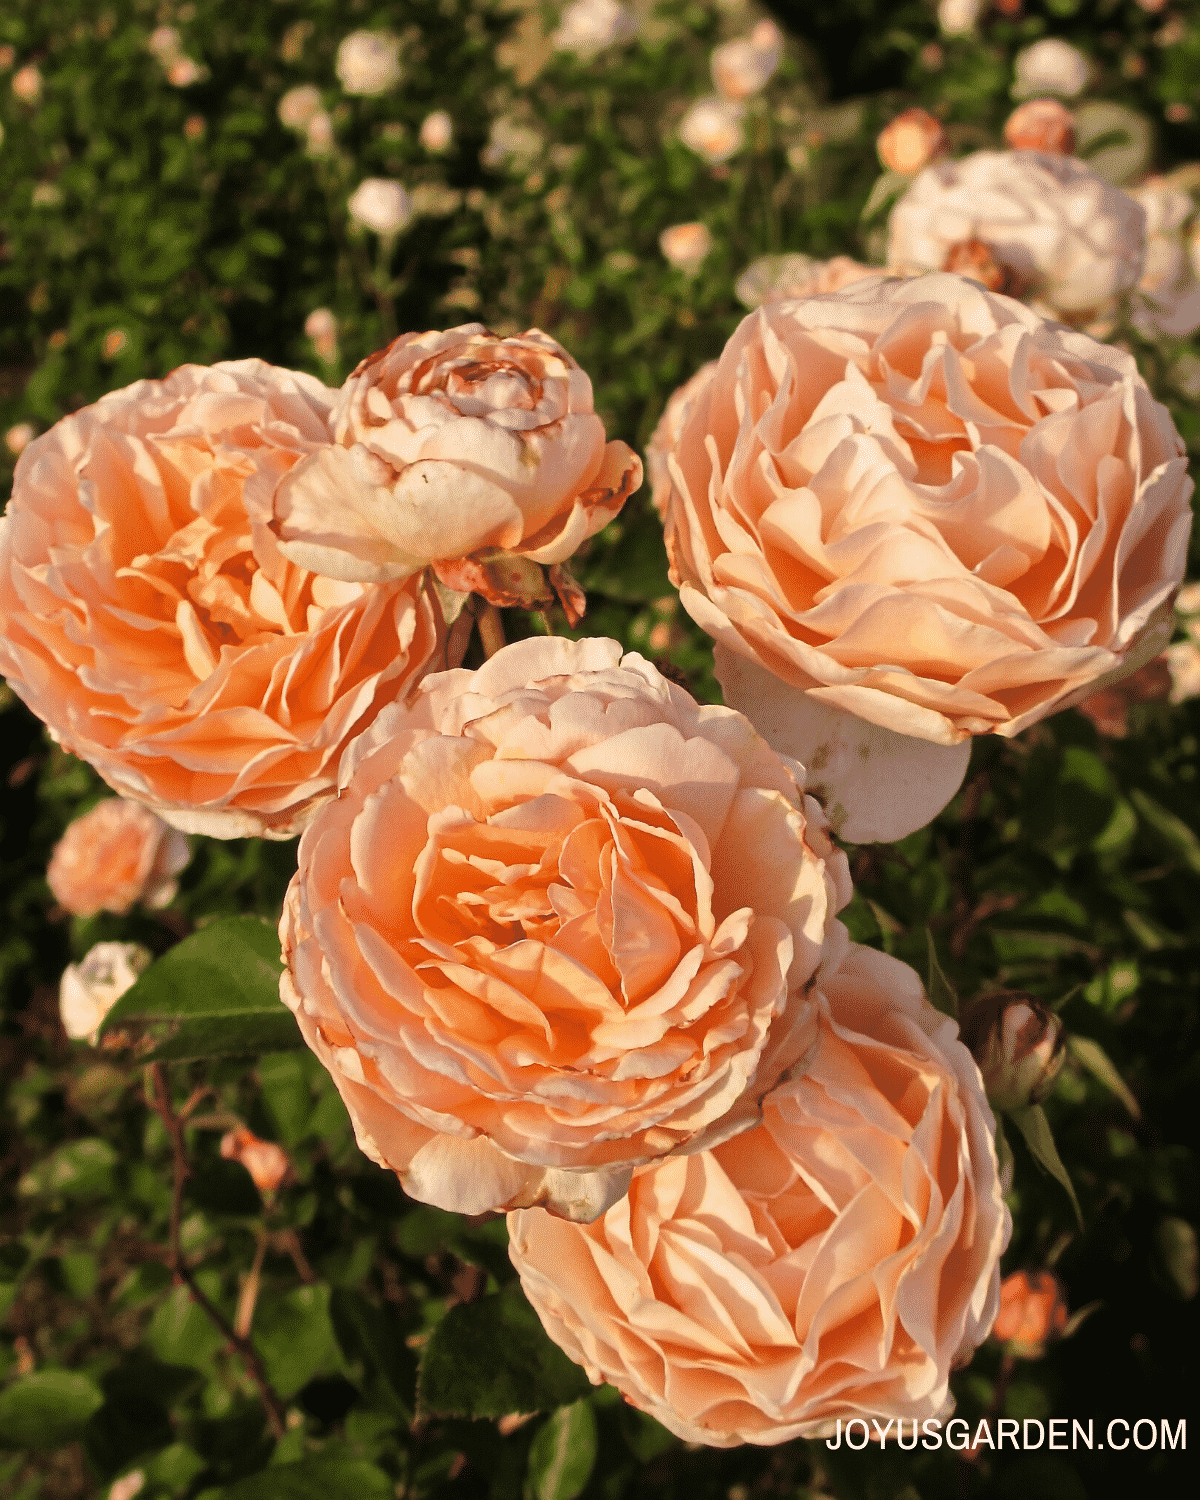 close up of 5 peach colored roses in the sunlight